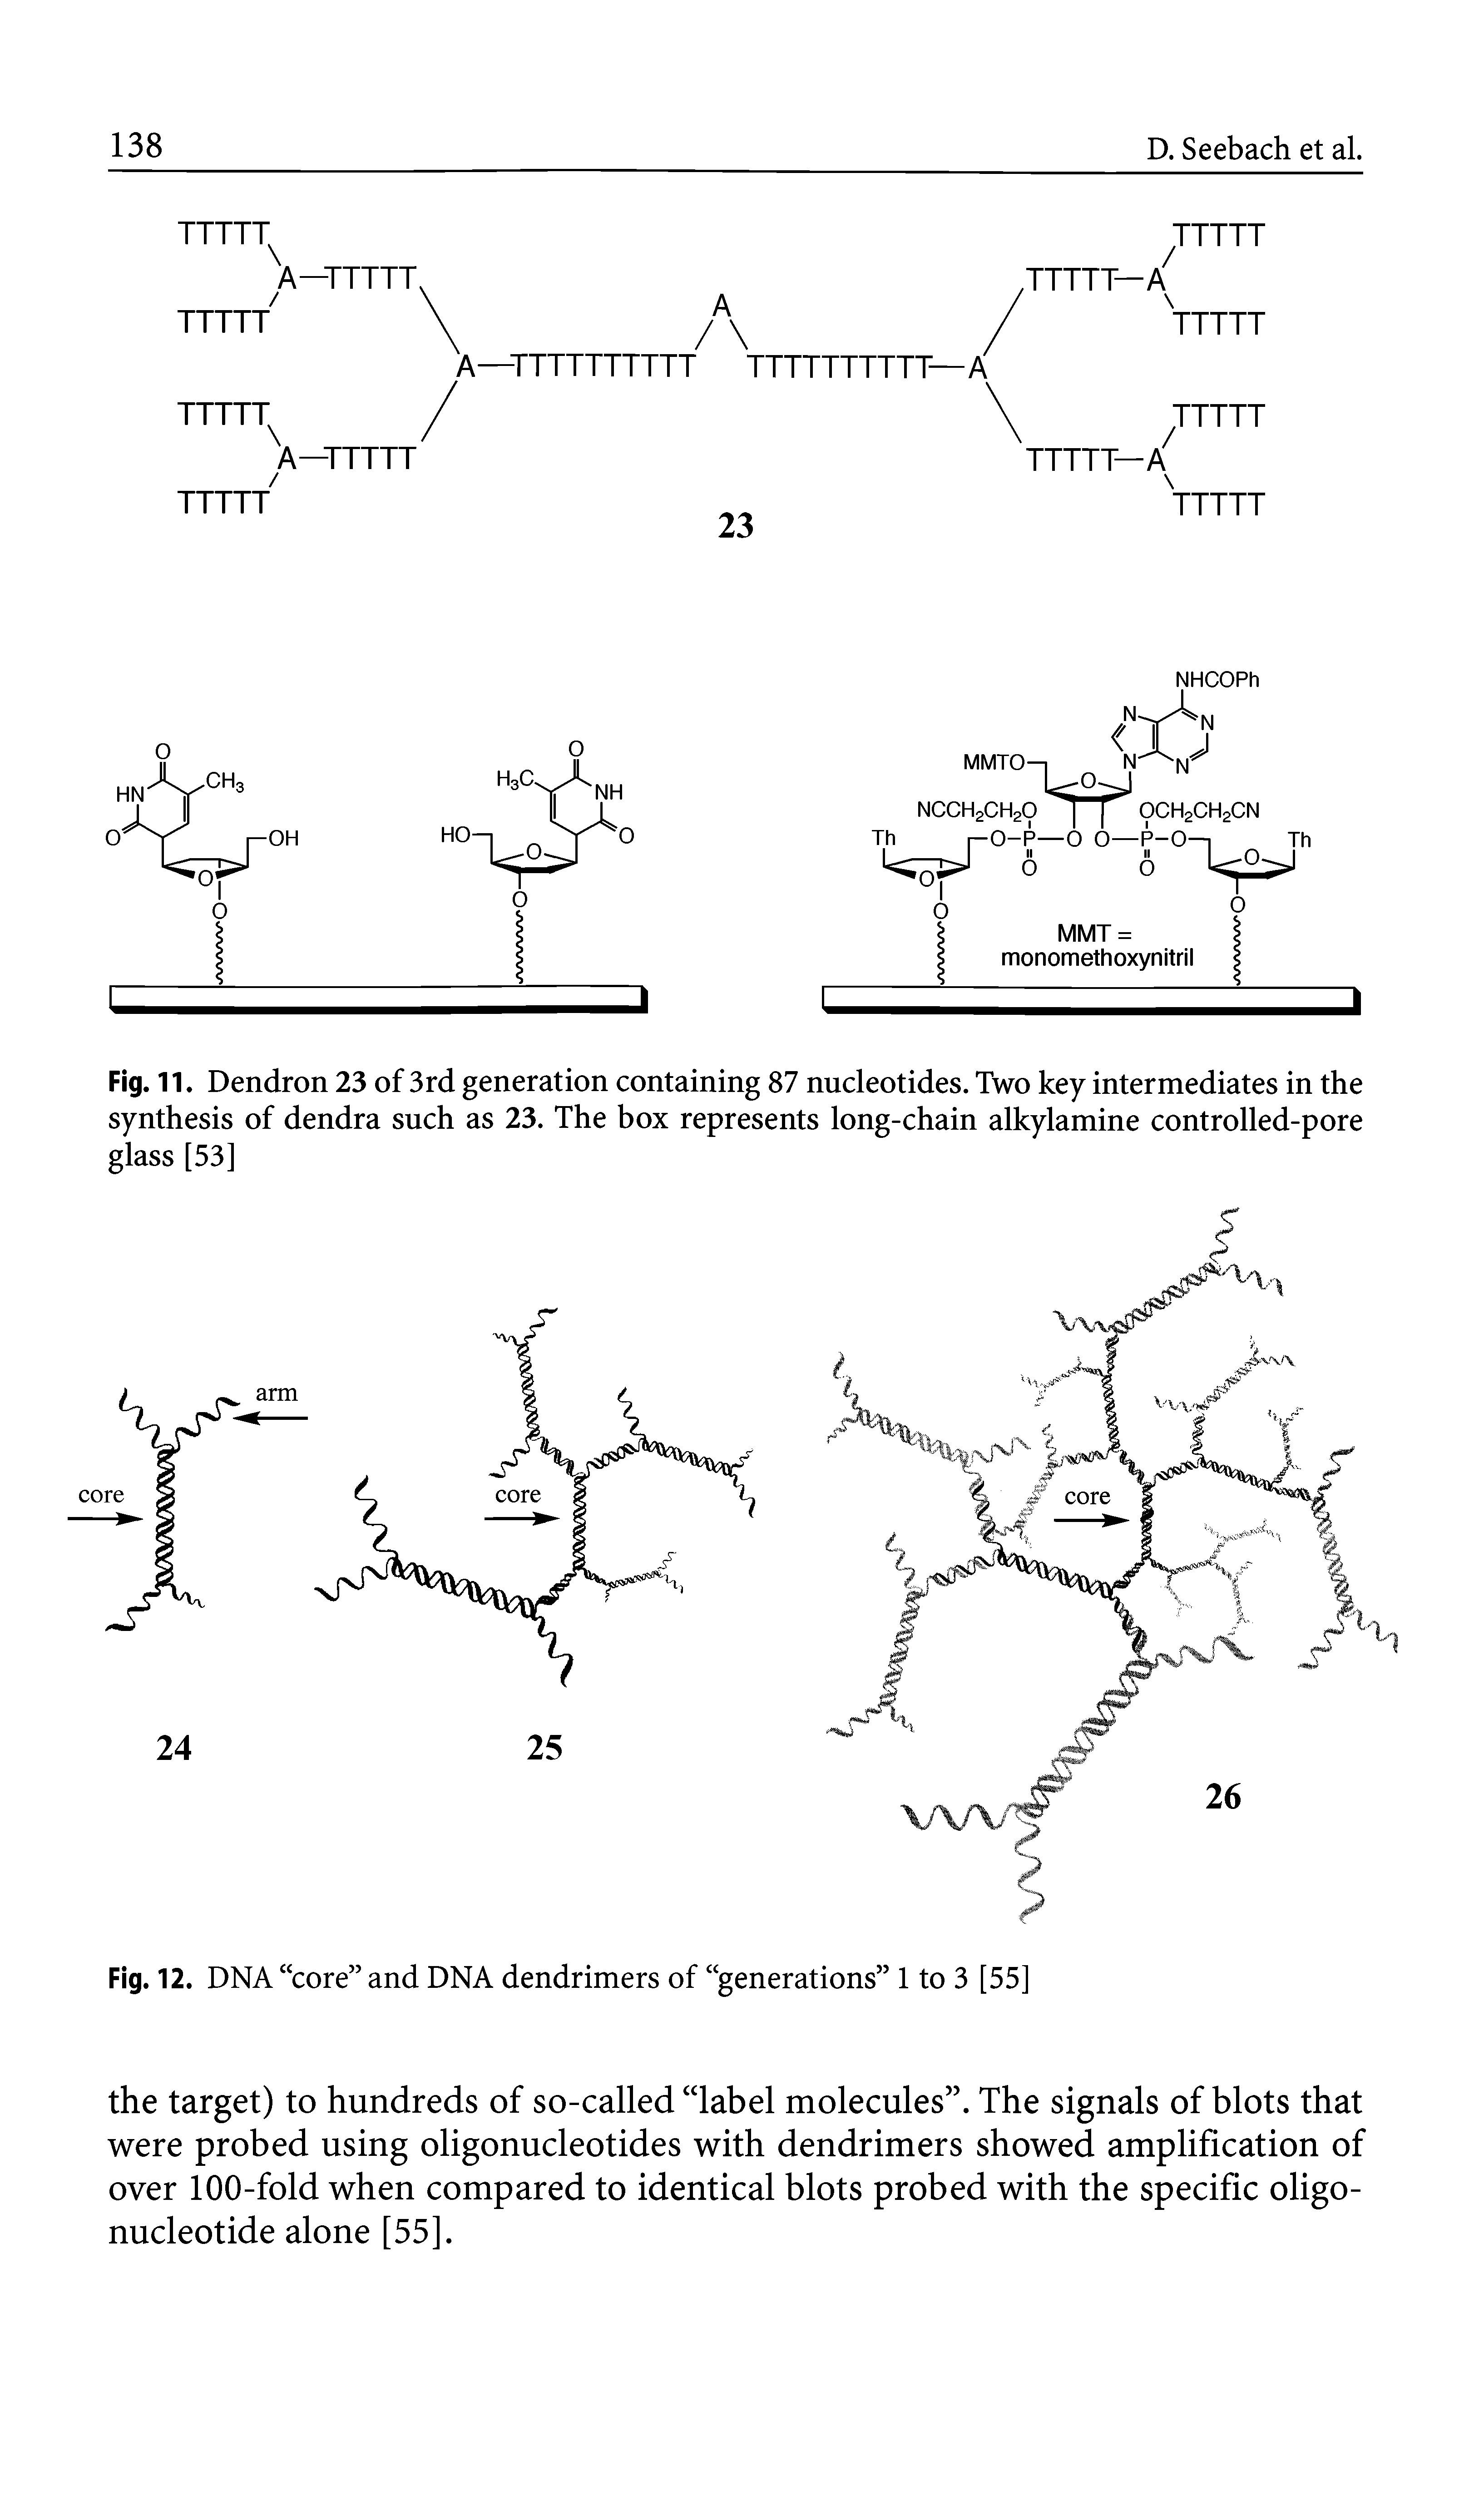 Fig. 11. Dendron 23 of 3rd generation containing 87 nucleotides. Two key intermediates in the synthesis of dendra such as 23. The box represents long-chain alkylamine controlled-pore glass [53]...